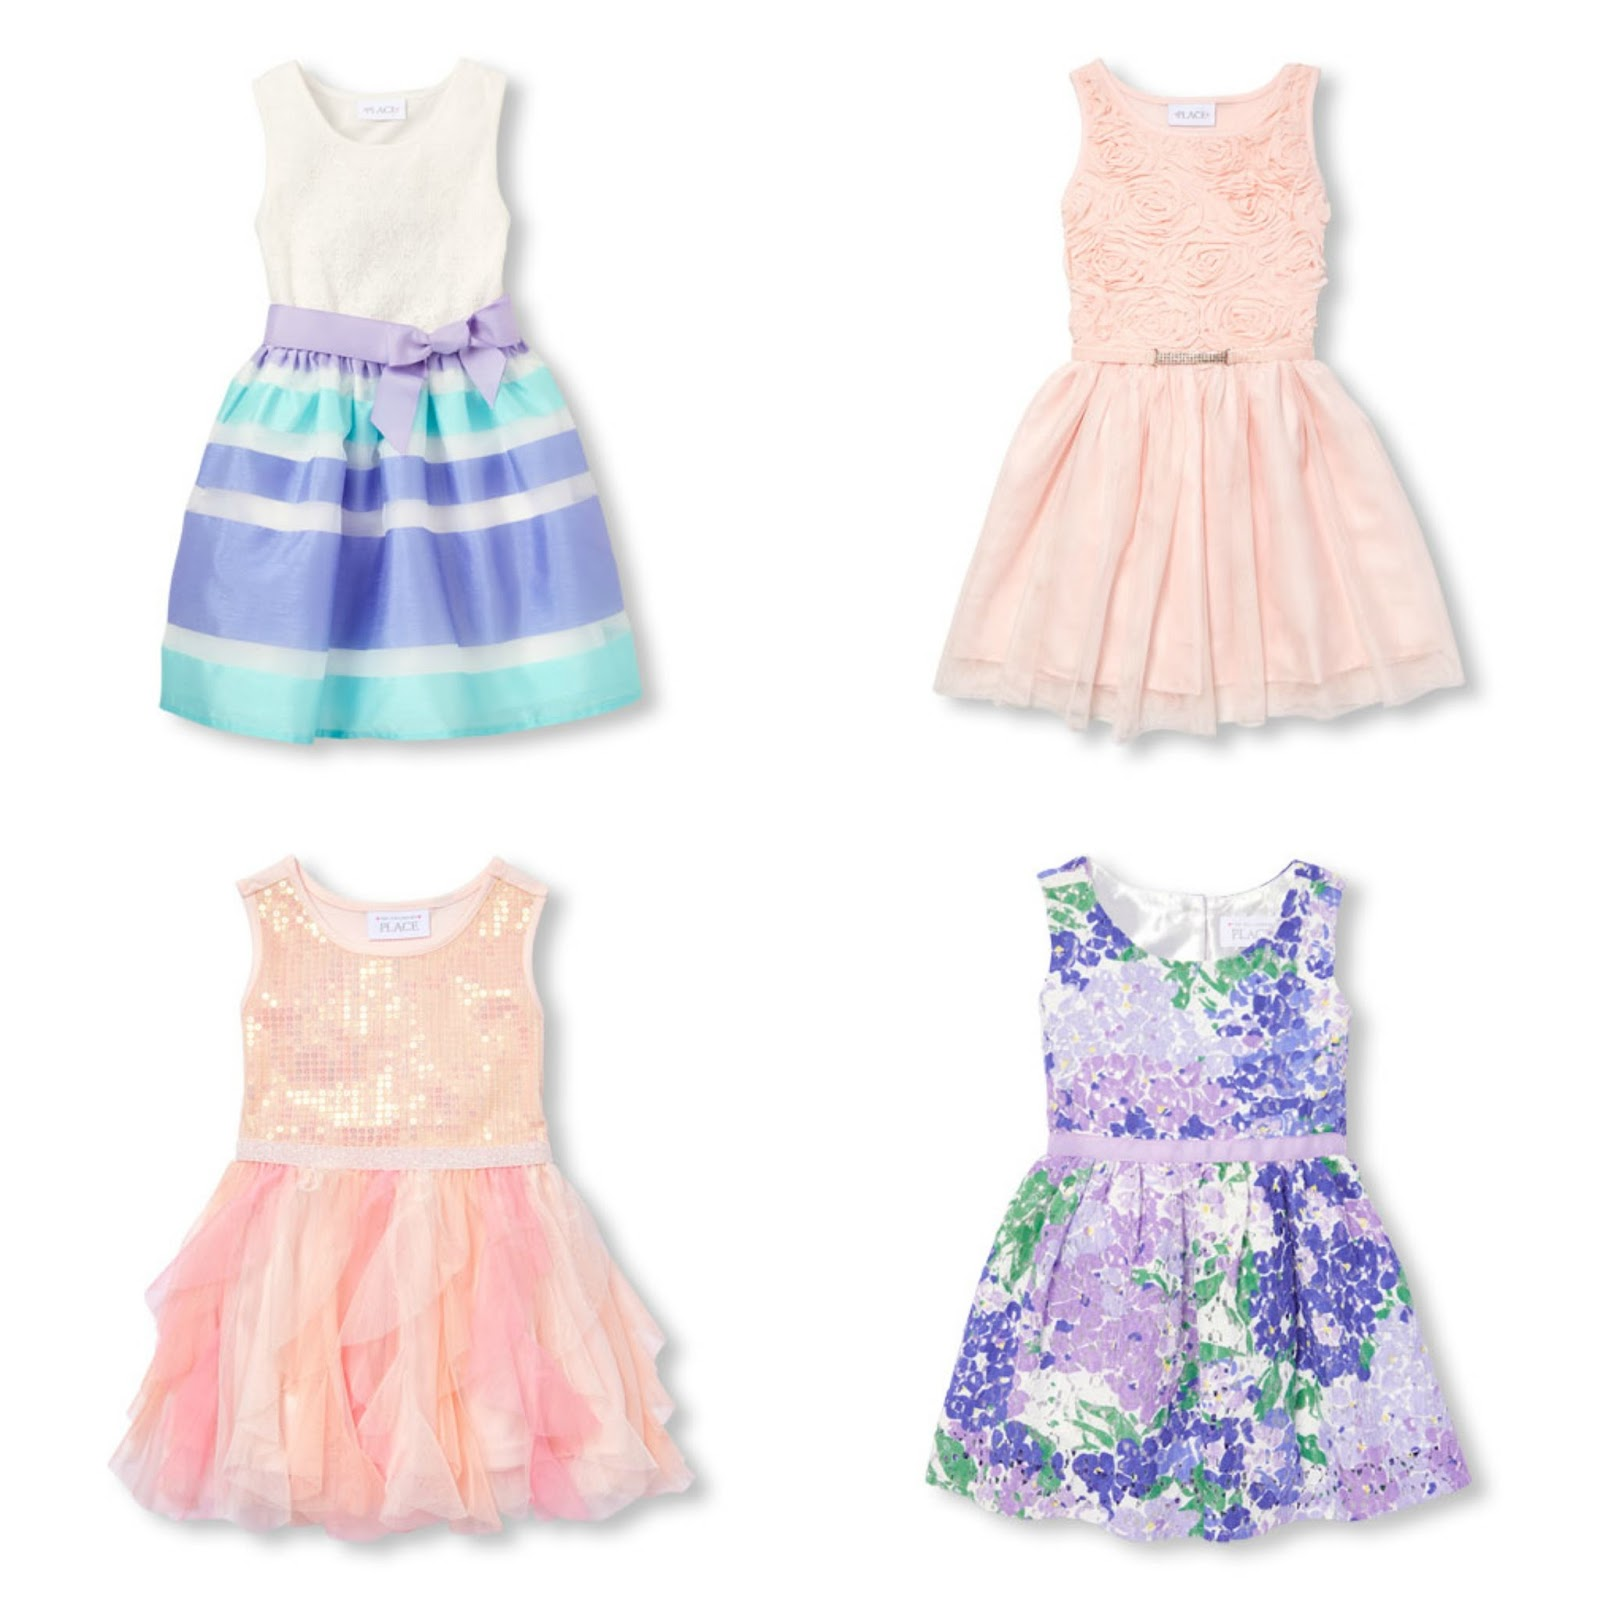 681b8af541c27 Today at The Children s Place you can save 50% off Easter dresses for girls  and handsome clothes for boys! The dresses start at only  15 and shipping  is ...